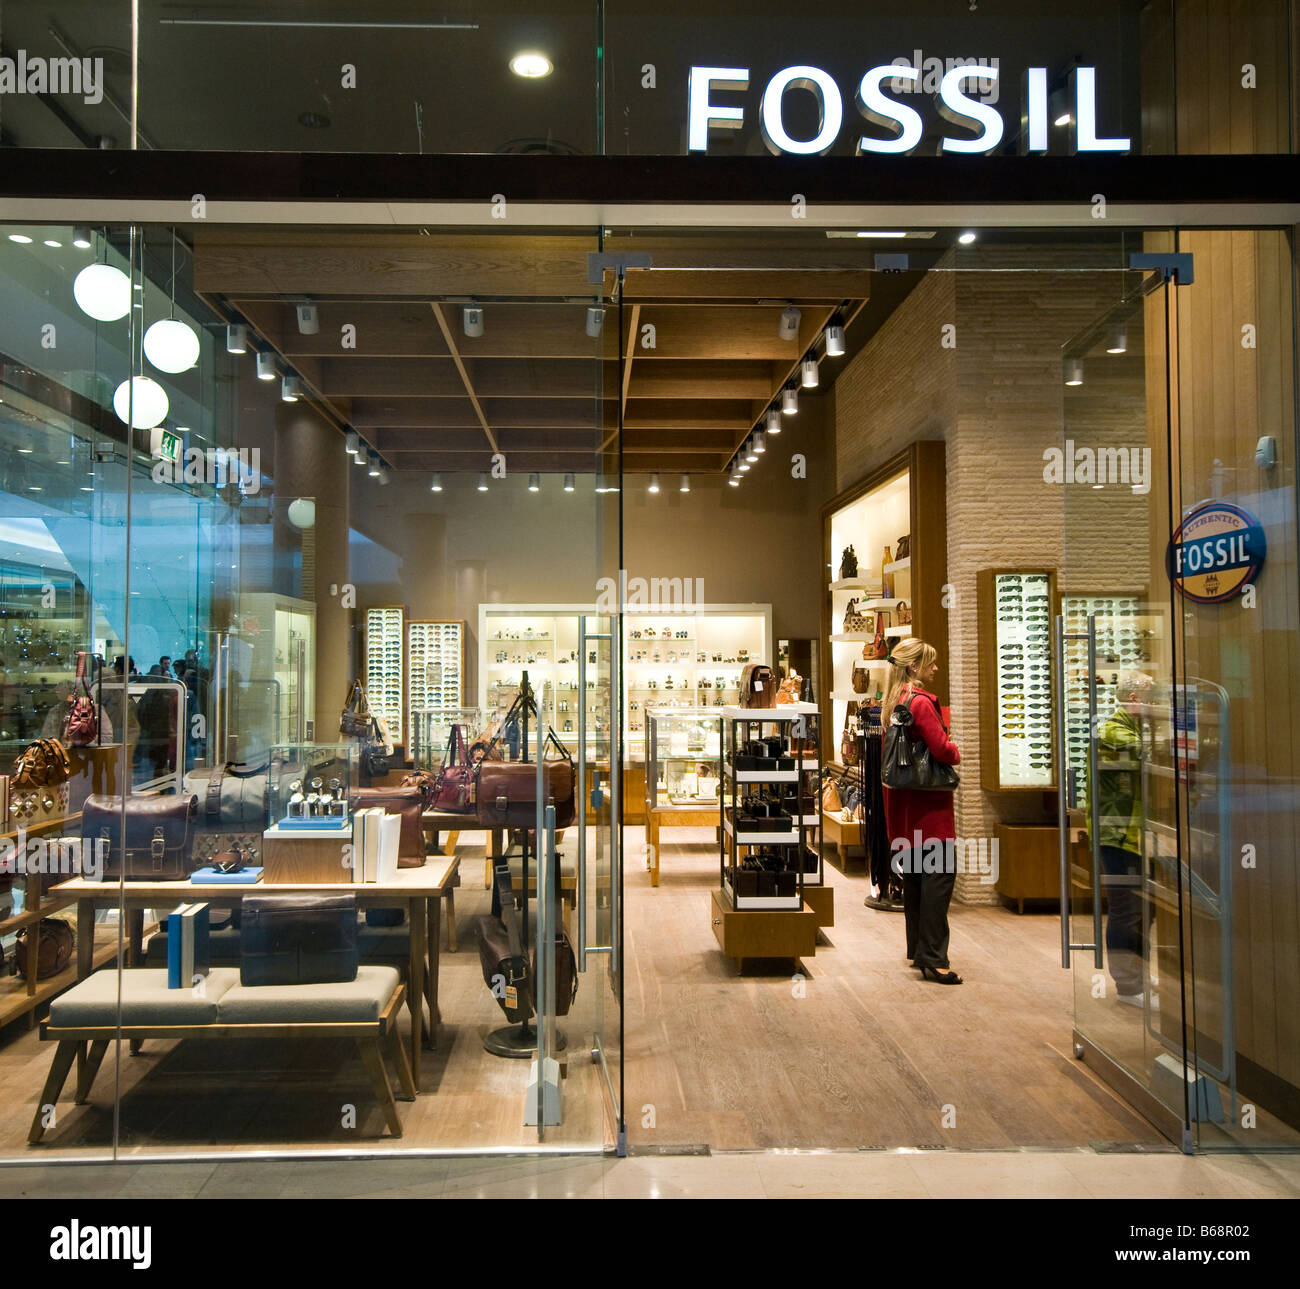 Fossil - Stock Image